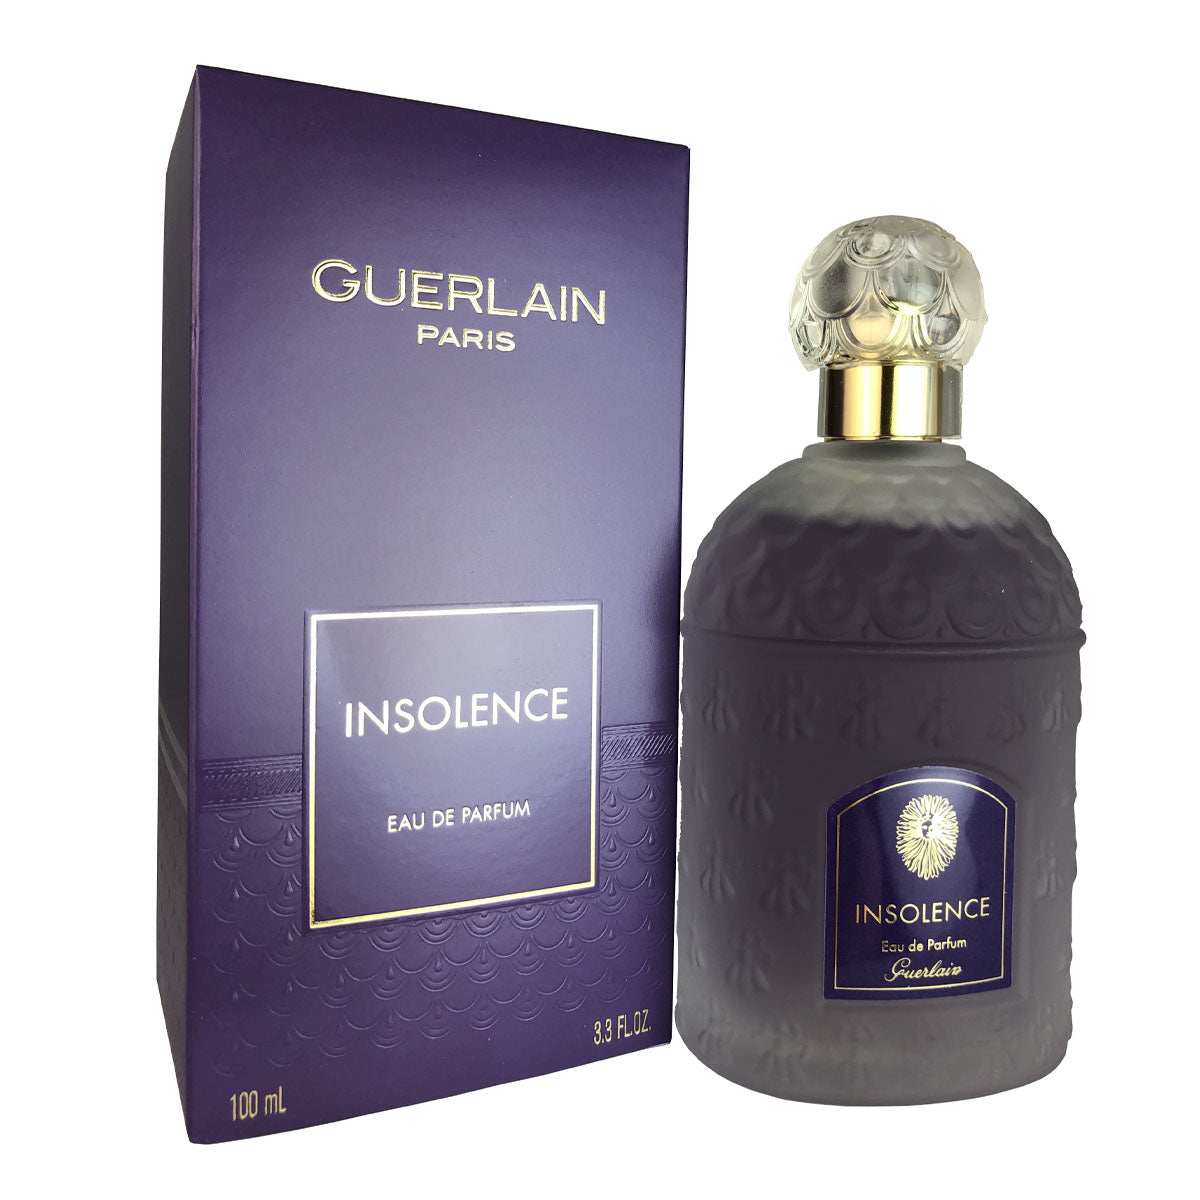 Insolence for Women by Guerlain 3.4 oz Eau de Parfum Spray